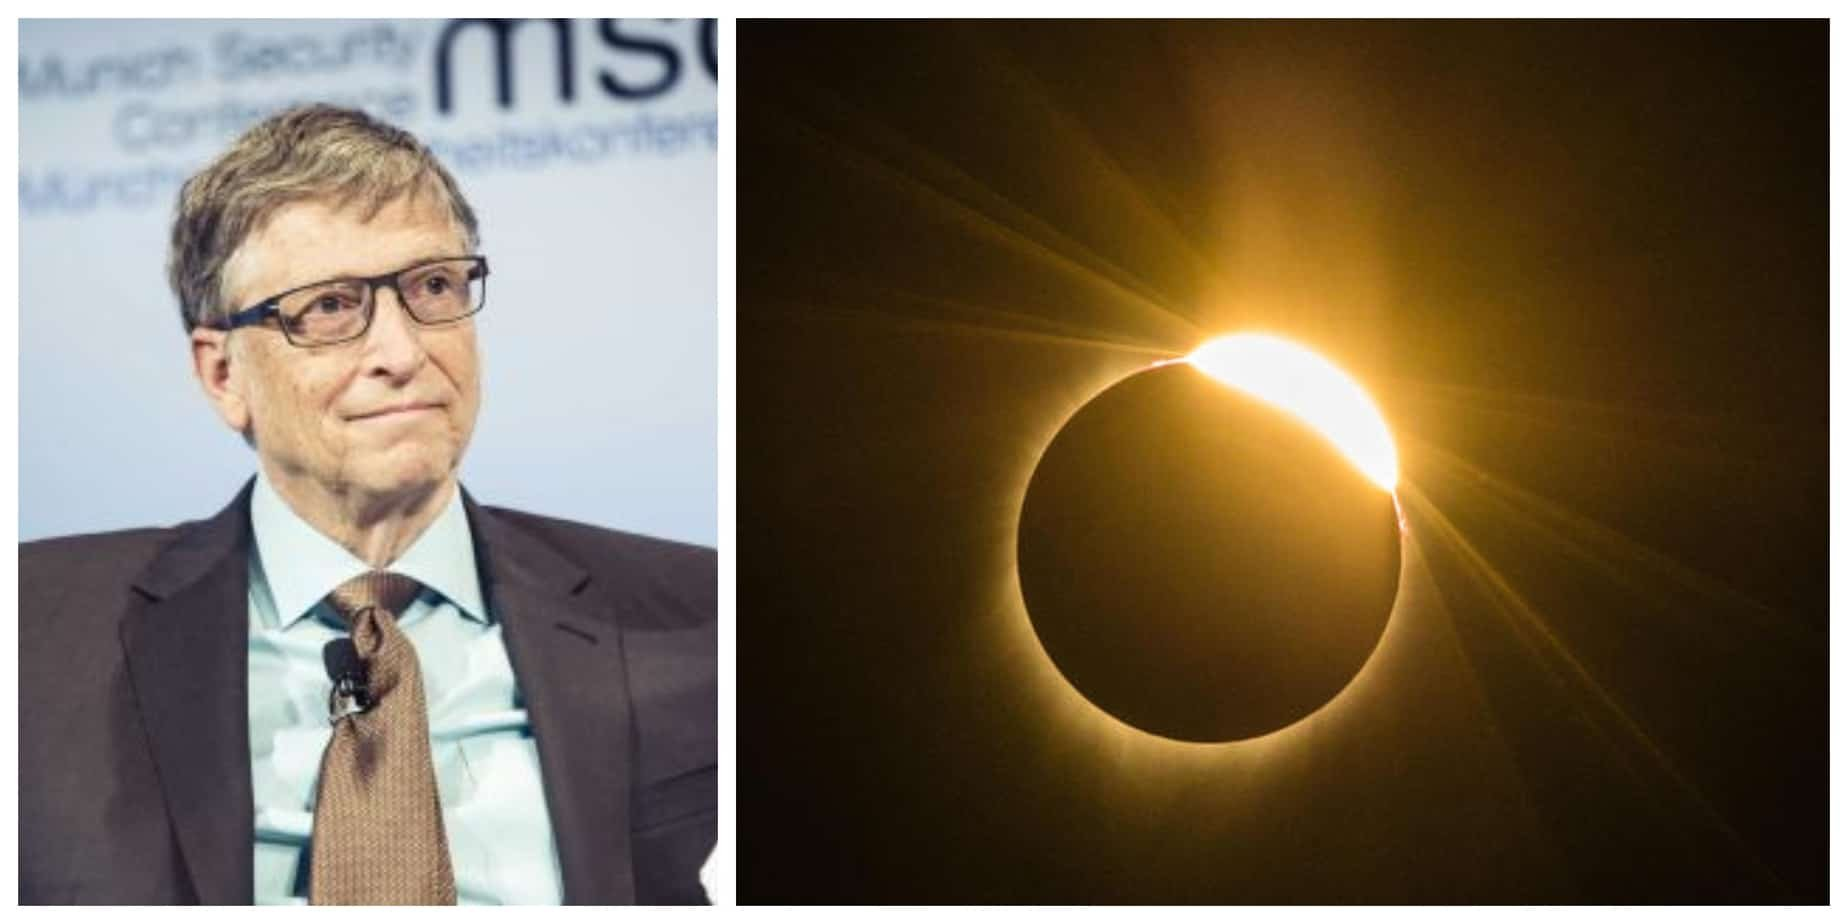 Bill Gates backs plan to tackle climate change by blocking out the sun